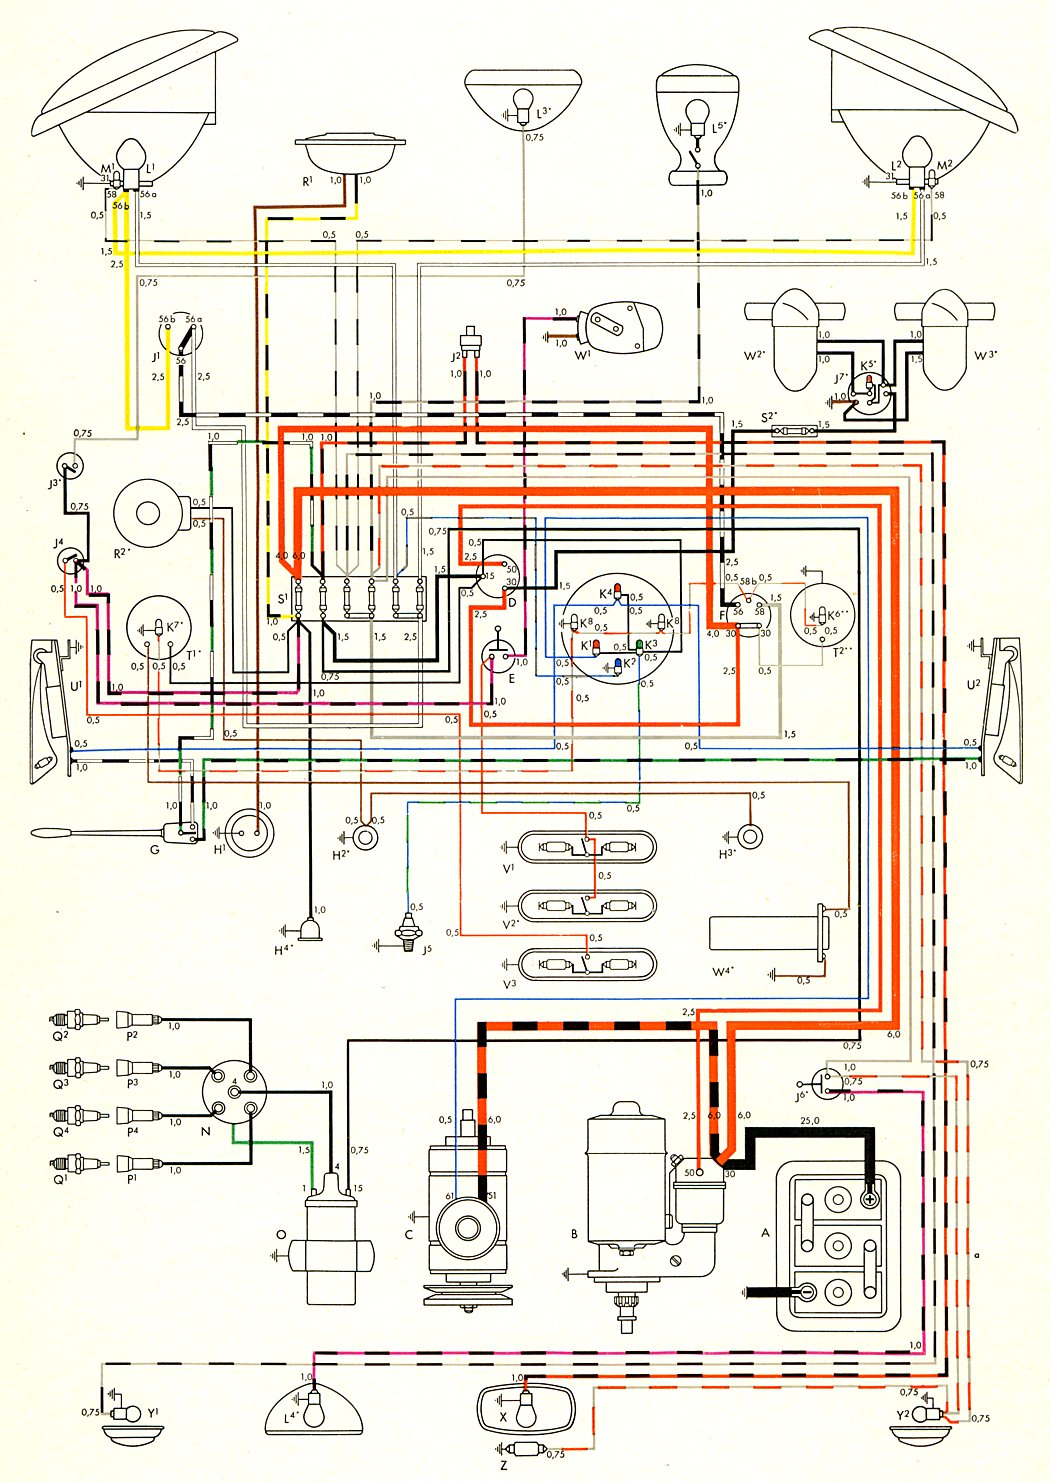 thesamba com type 2 wiring diagrams rh thesamba com 1972 VW Wiring Diagram 1972 VW Wiring Diagram